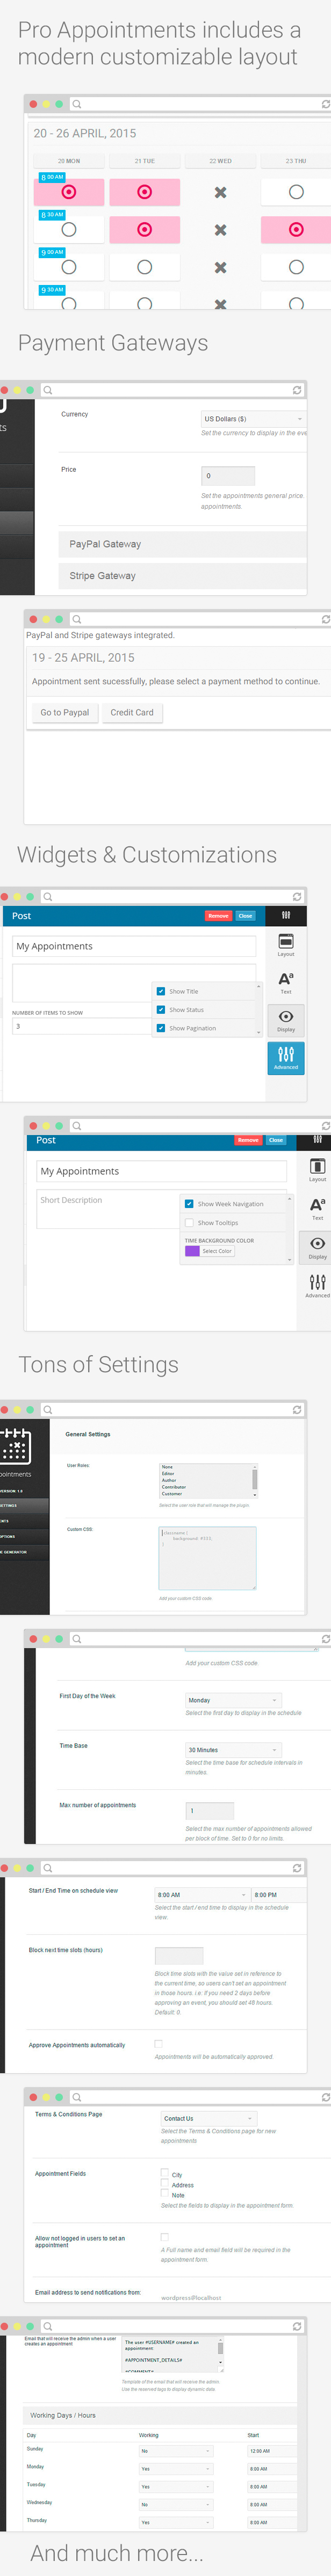 Wordpress Pro Appointments